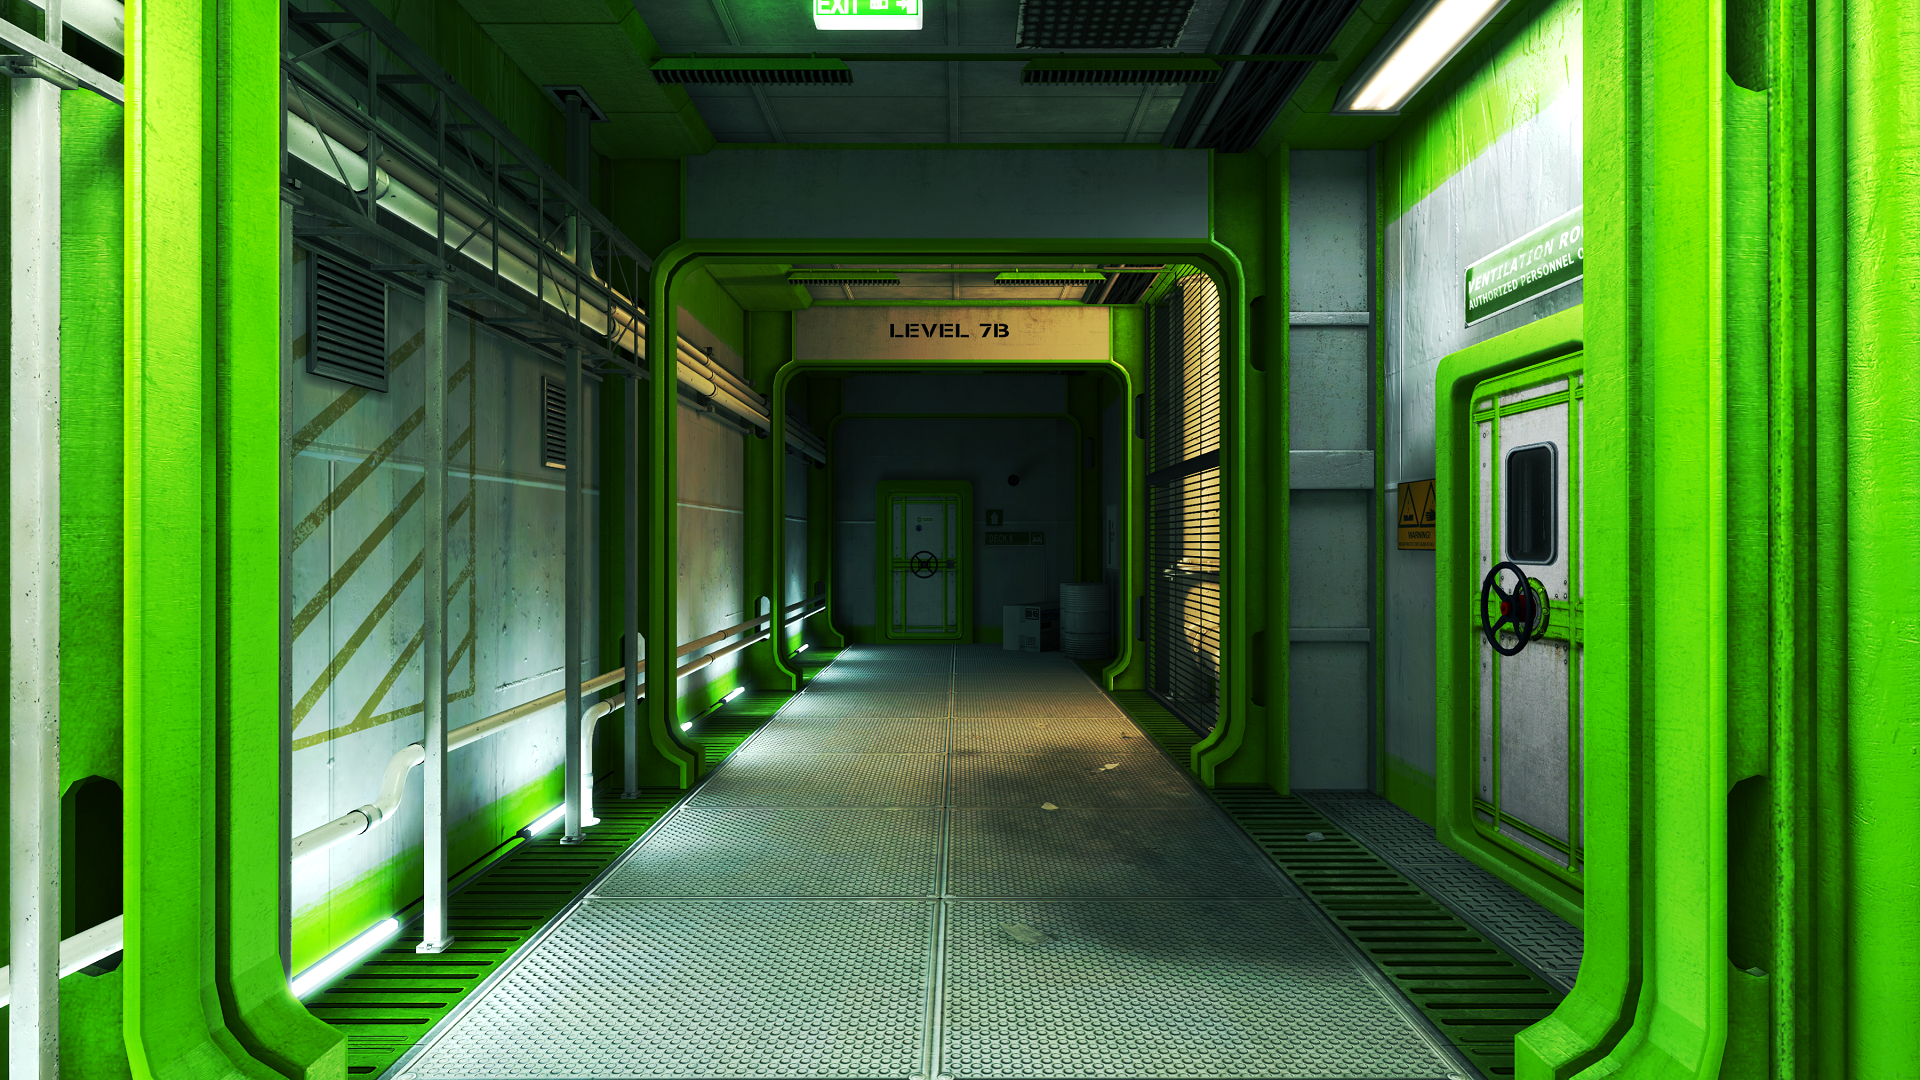 mirrorsedge2013-01-08drjoy.png